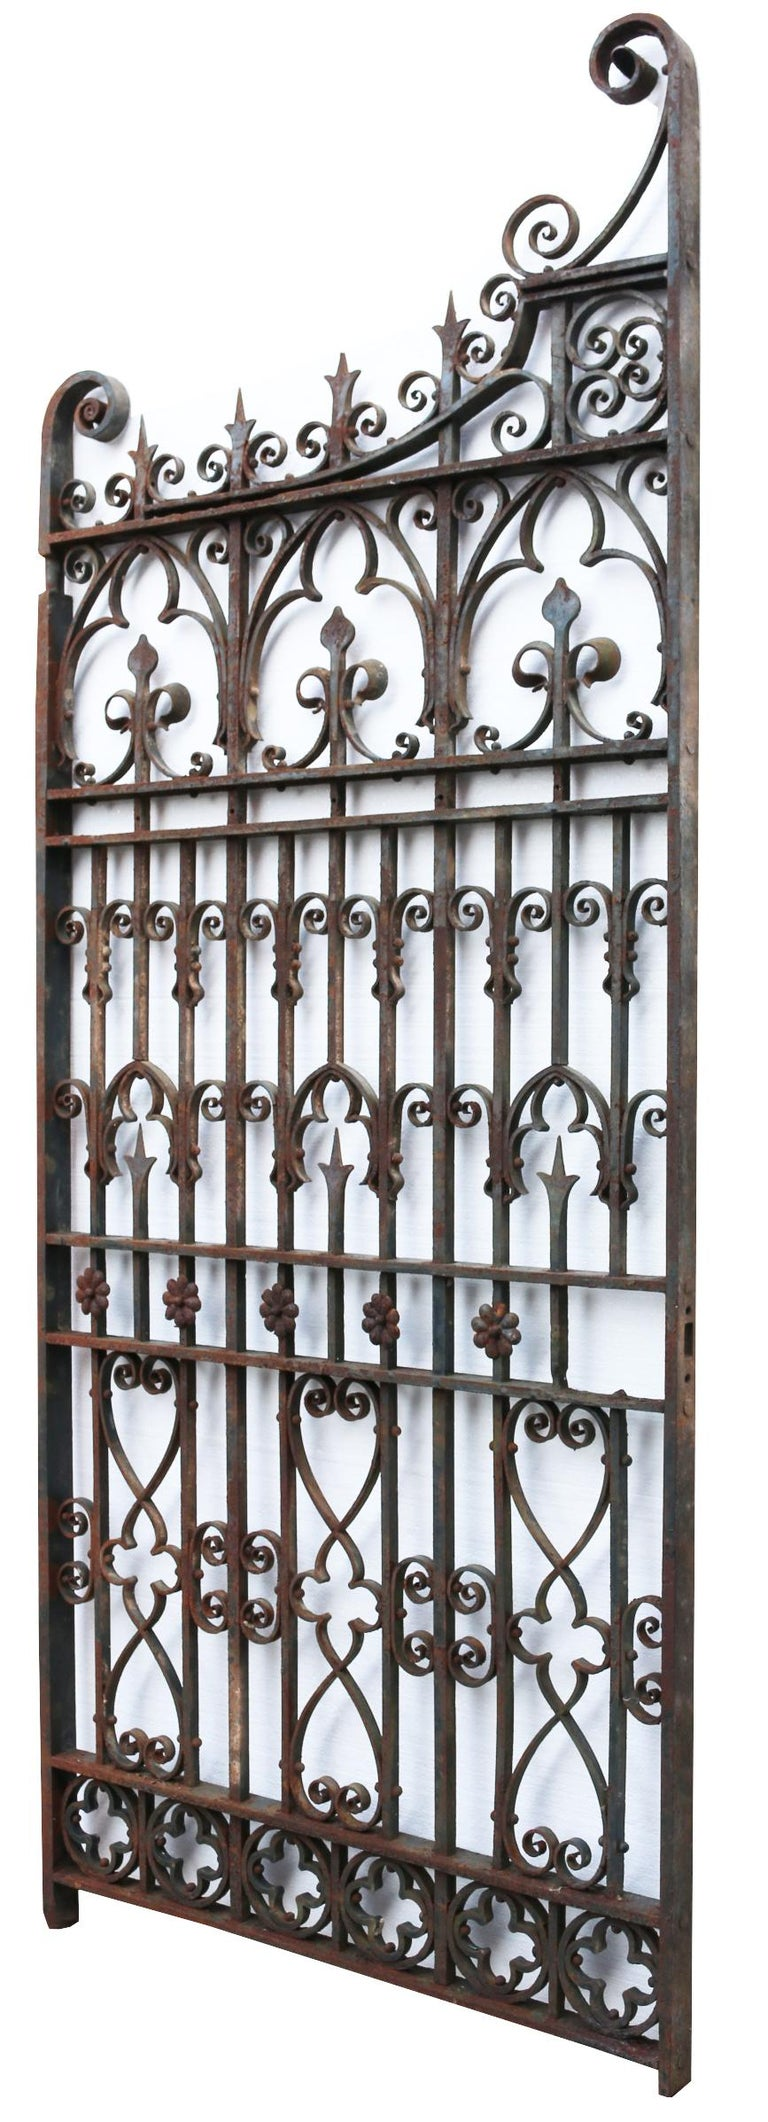 Antique English Wrought Iron Garden Gate In Fair Condition For Sale In Wormelow, Herefordshire